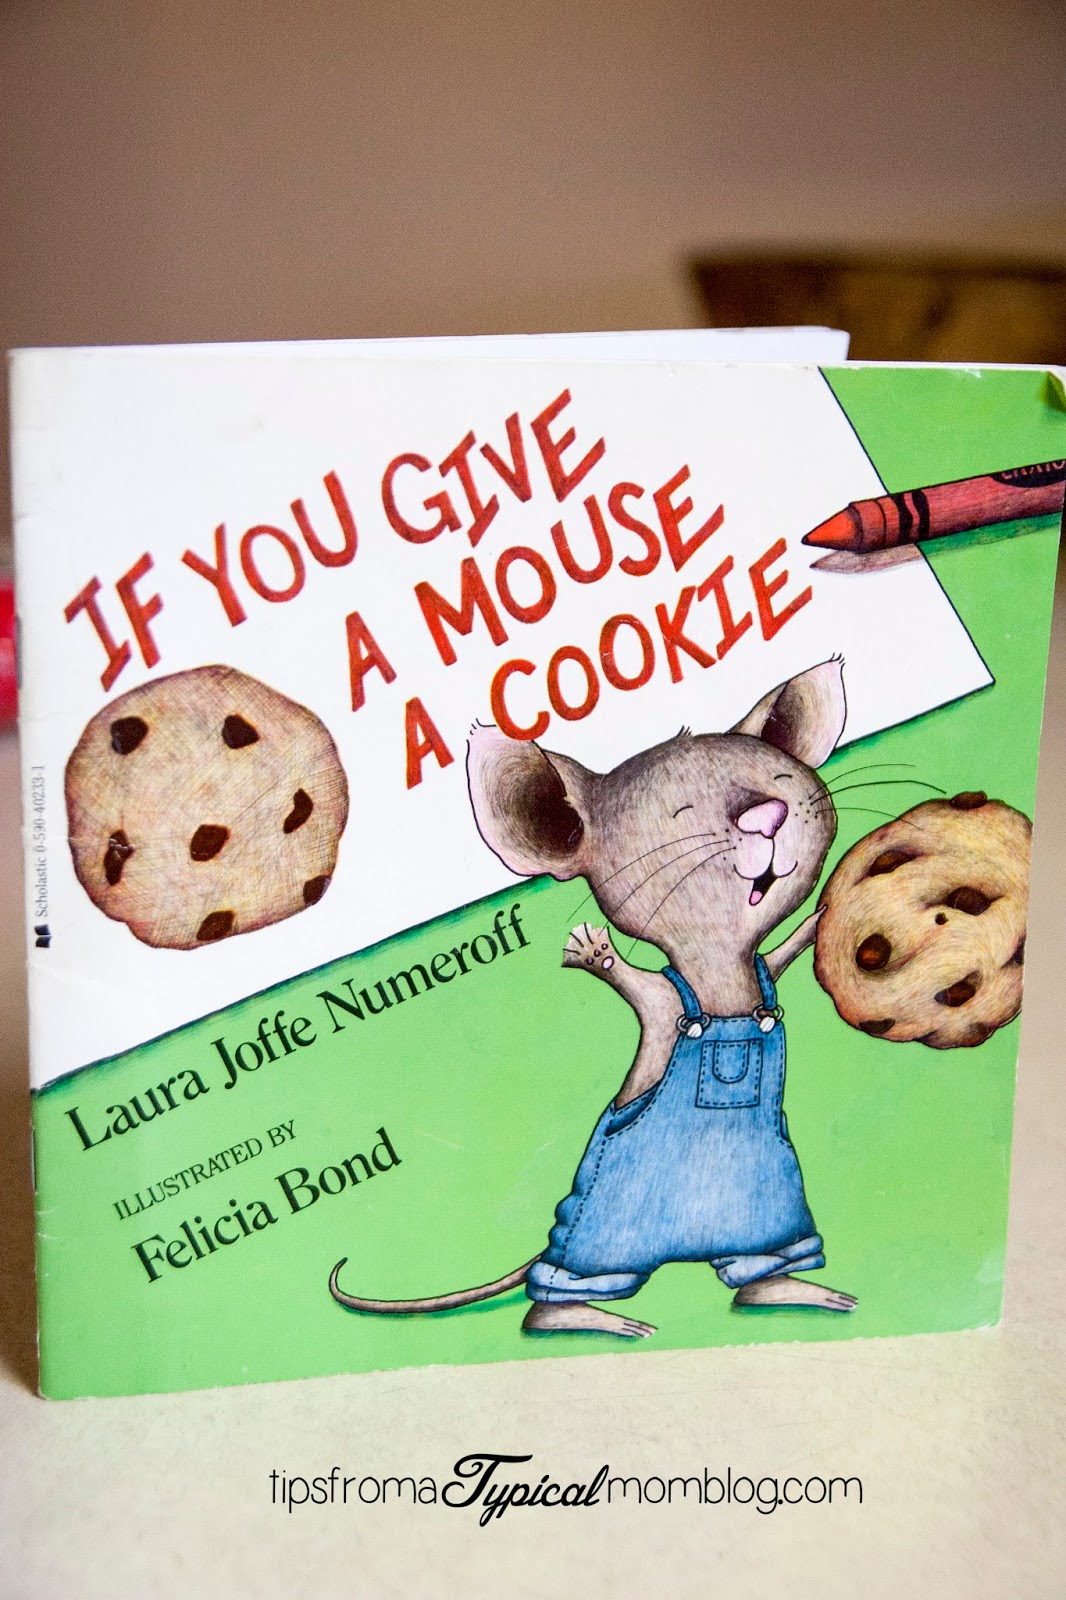 Perfect Chocolate Chip Cookie Recipe Amp Math Activity If You Give A Mouse A Cookie